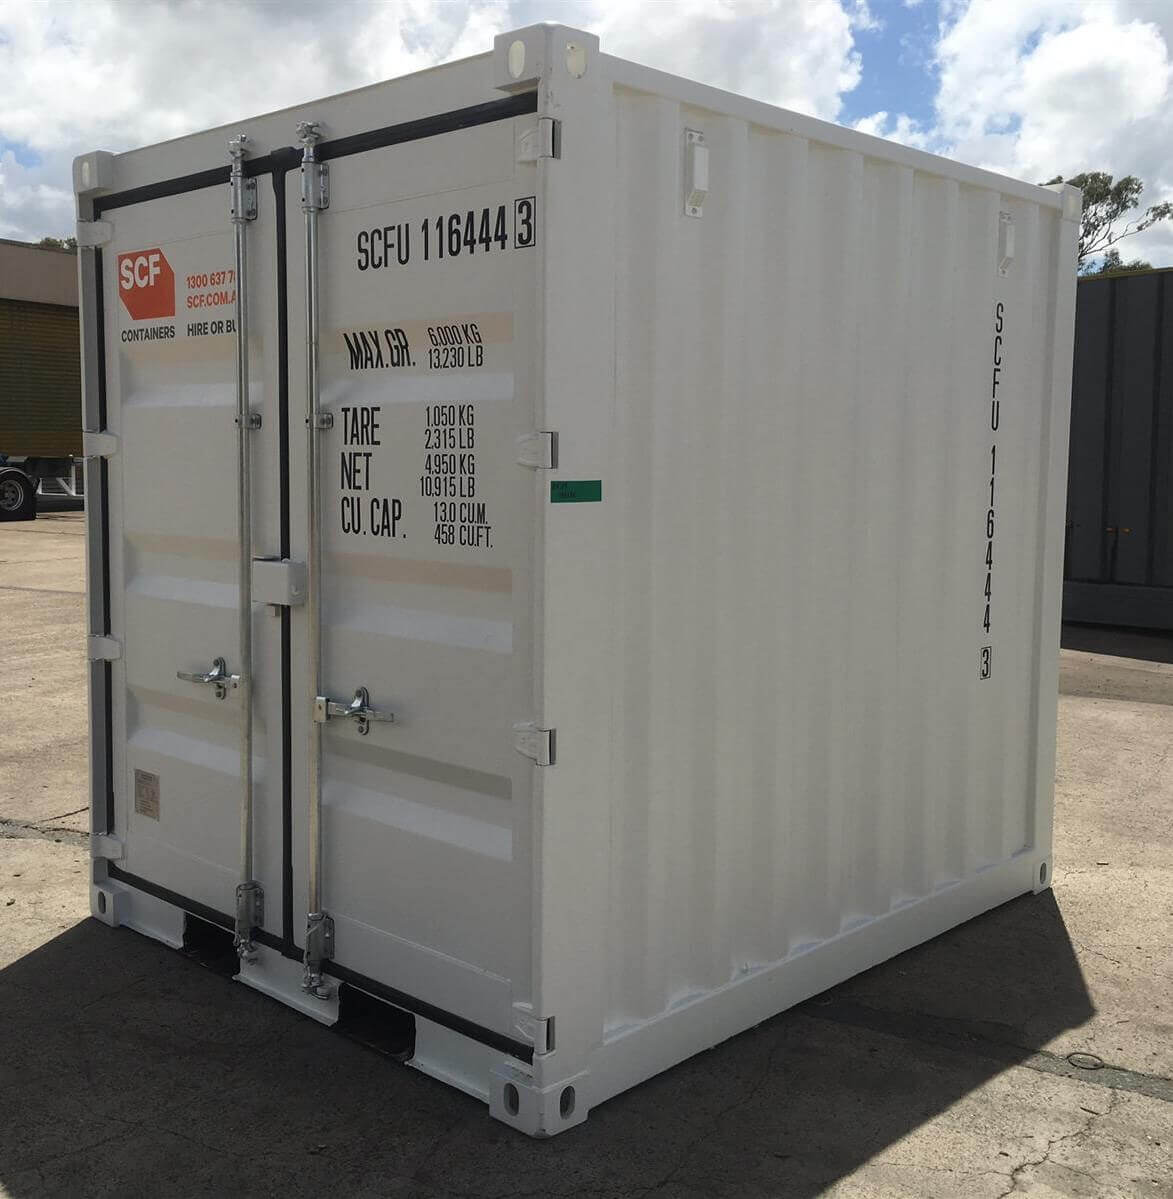 Storage Containers Gold Coast Ormeau Yatala Brisbane - Containers For Storage